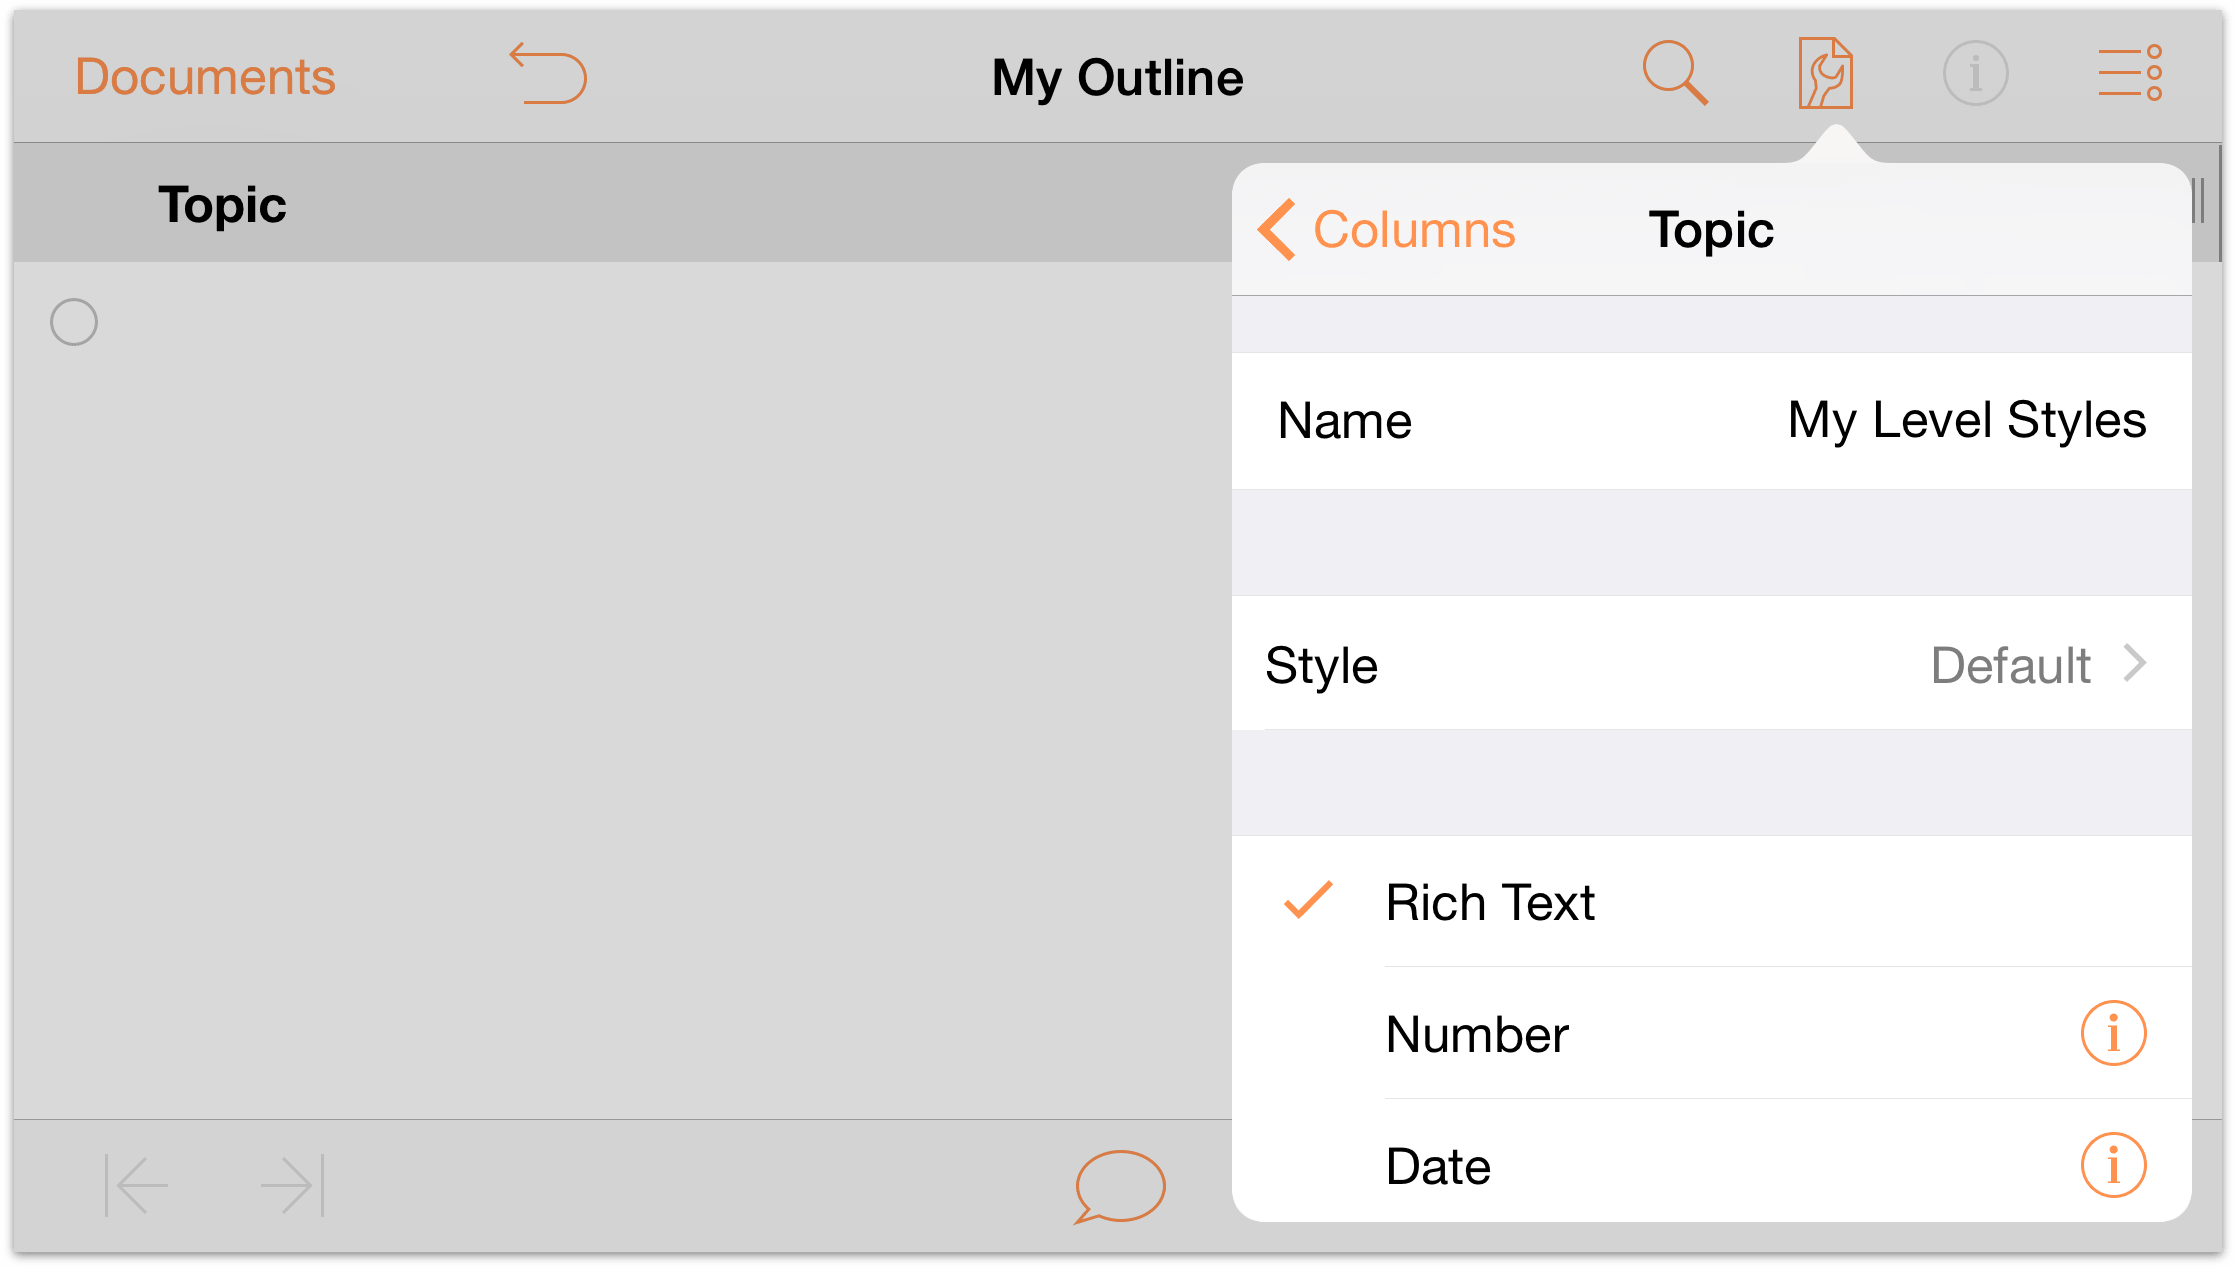 OmniOutliner 2.7 for iOS User Manual - Working with Templates and Styles